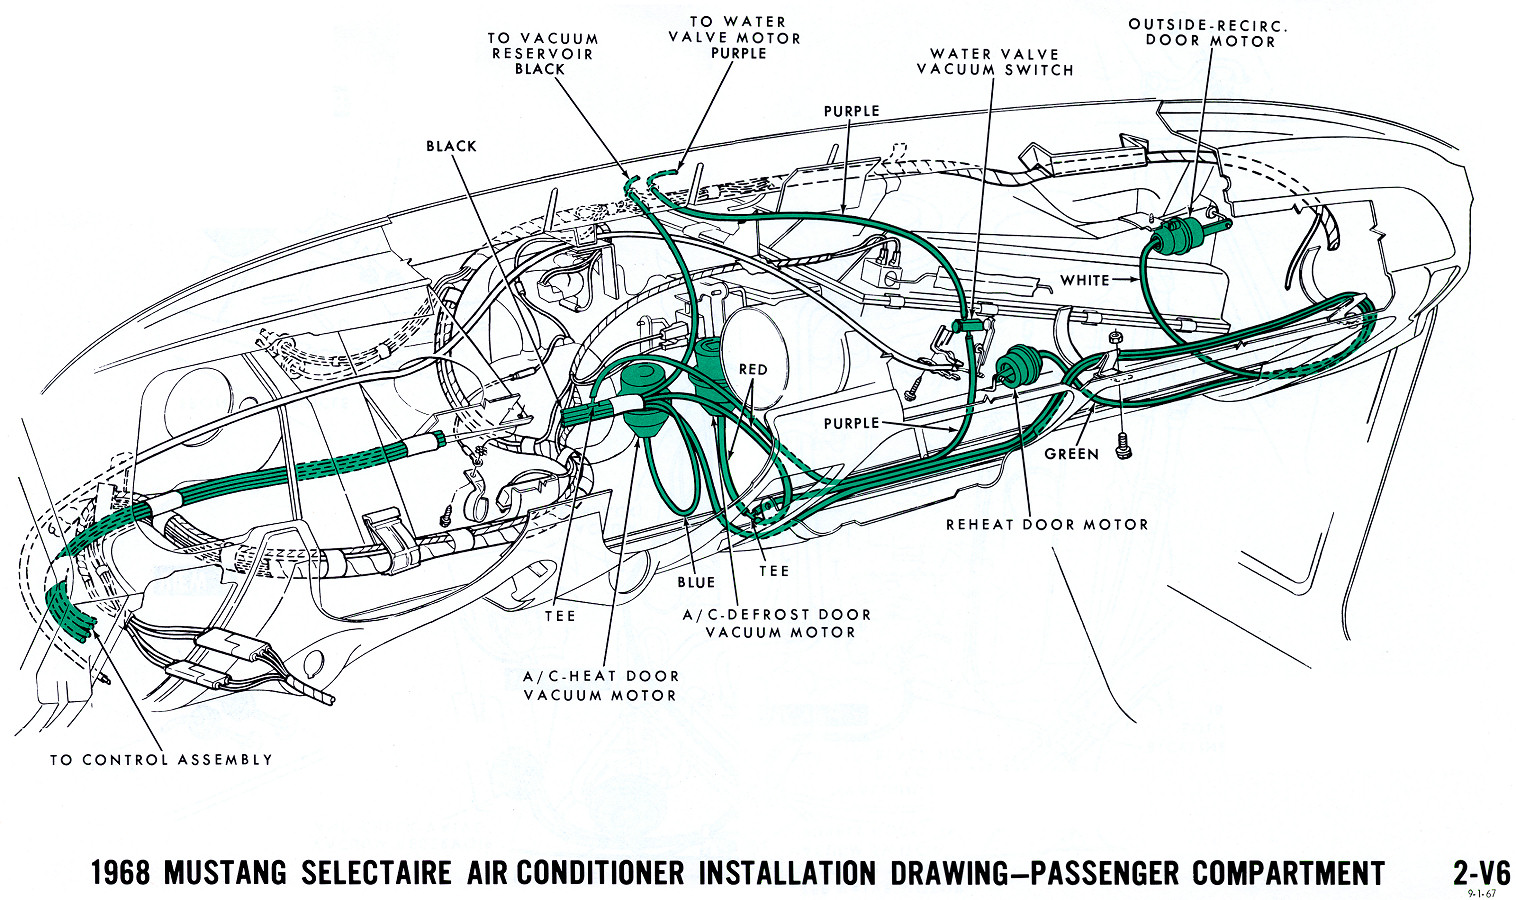 1969 Ford Mustang Wiring Diagram Detailed Diagrams Corvette Schematic 1968 And Vacuum Schematics Average Joe Alternator